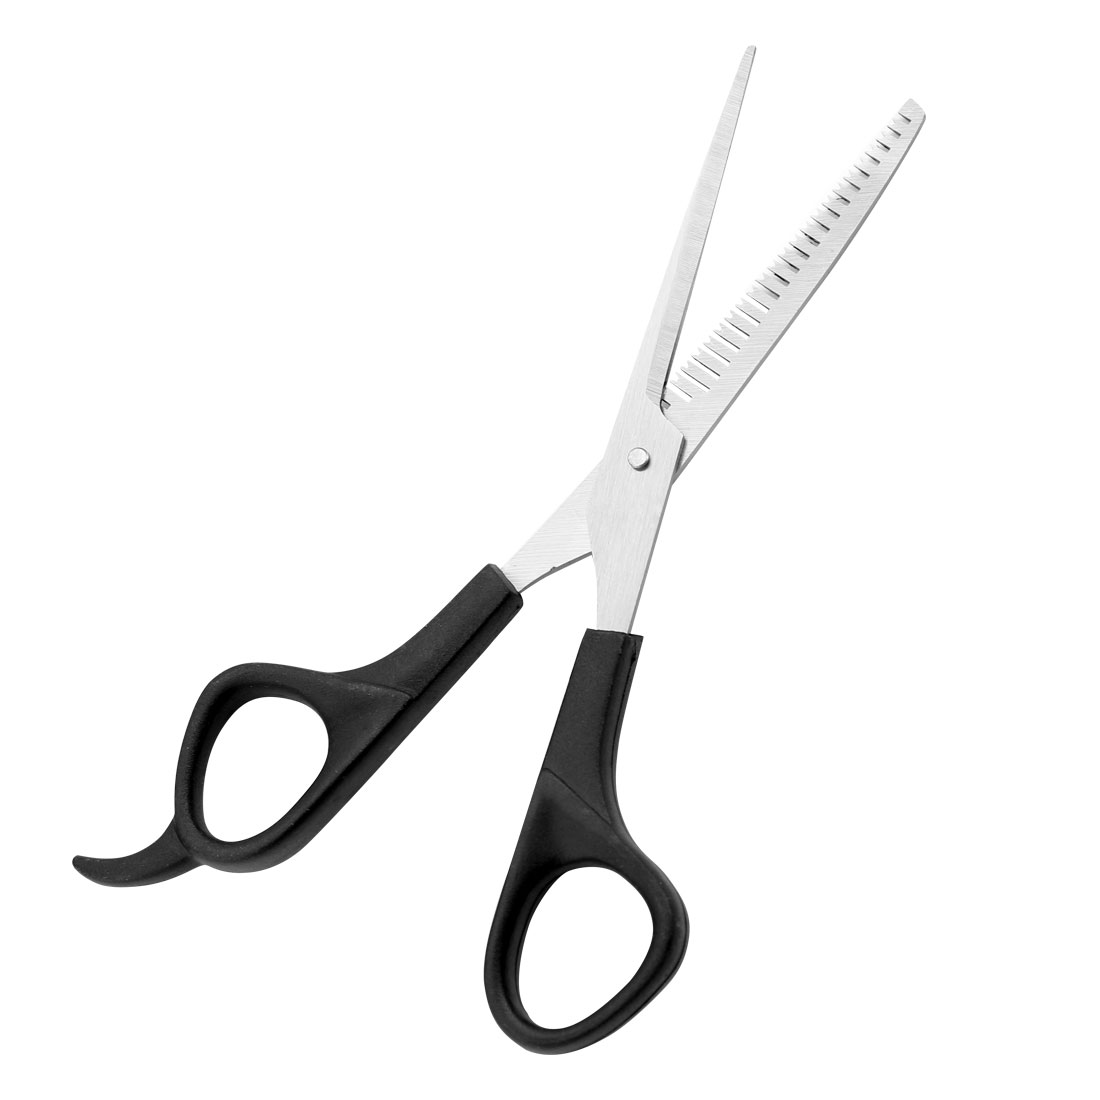 Silver Tone Cutter Black Grip Hairdresser Hair Scissors